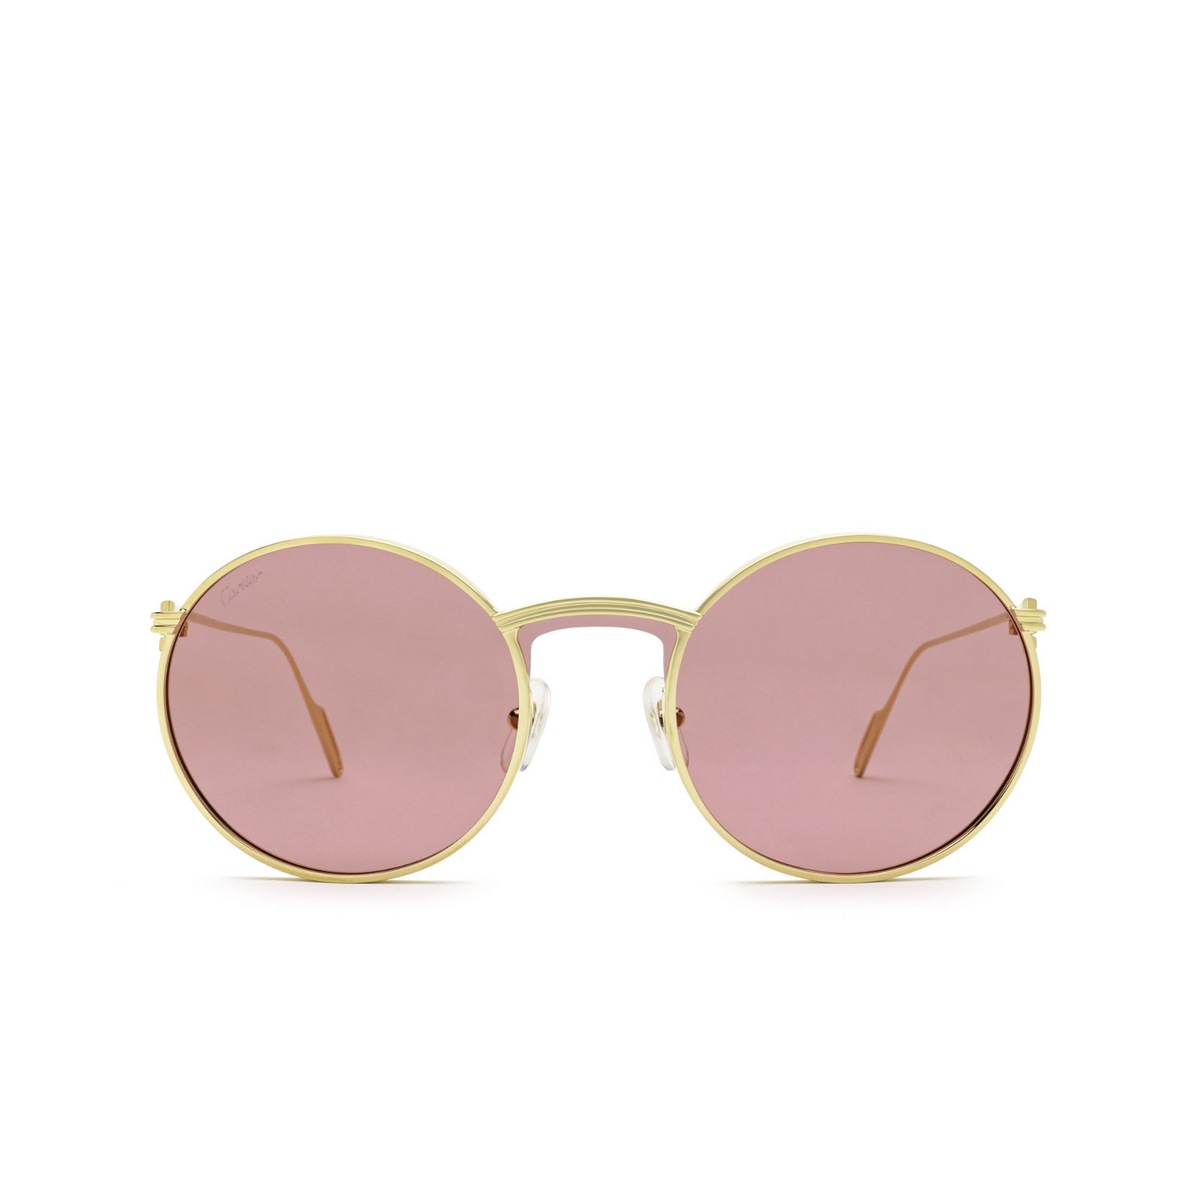 Cartier® Round Sunglasses: CT0274S color Gold 003 - front view.